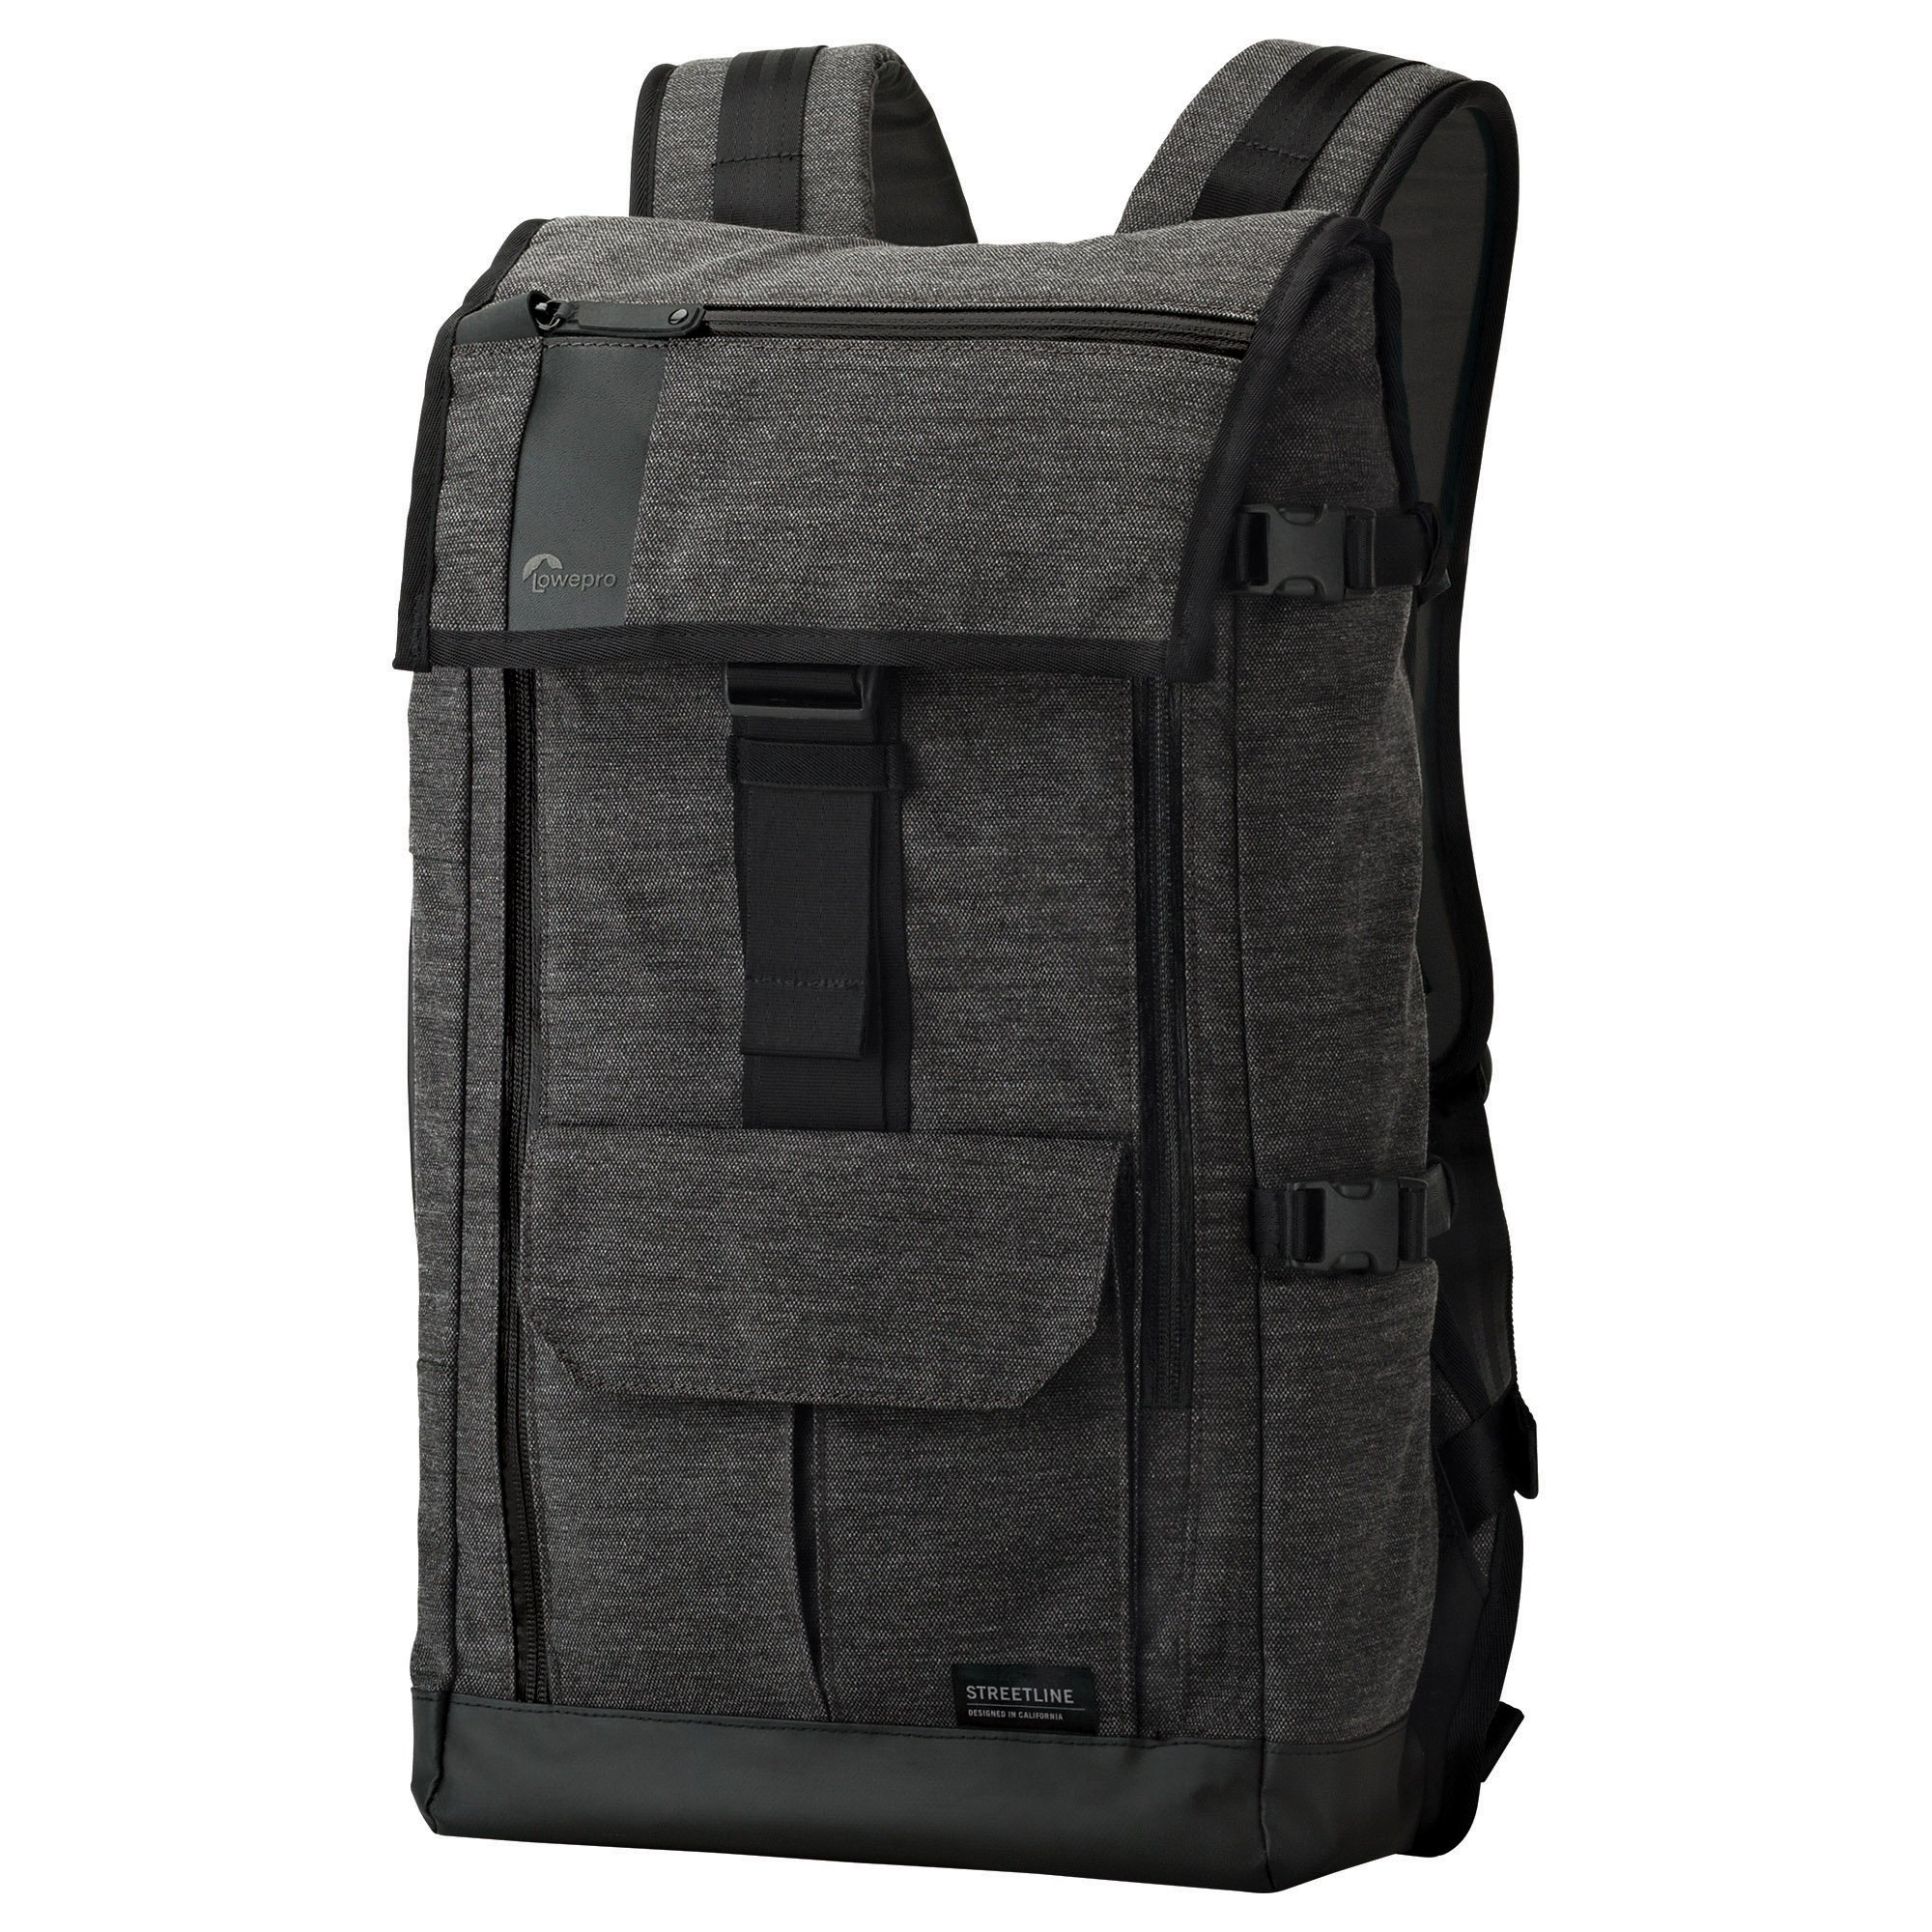 Lowepro Streetline BP 250 Slim Urban Backpack by Lowepro